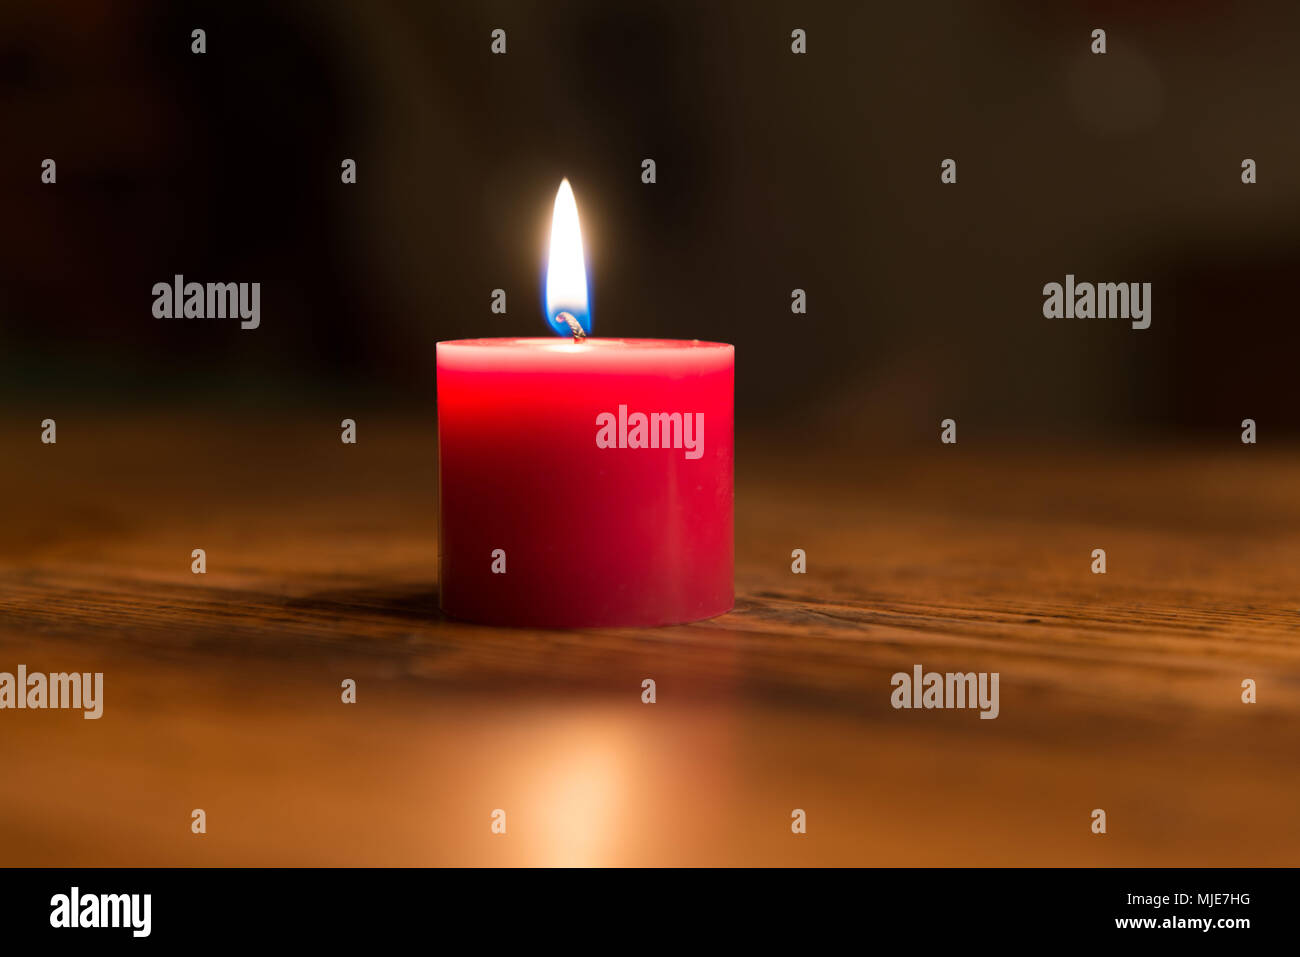 red candle on wooden table - Stock Image